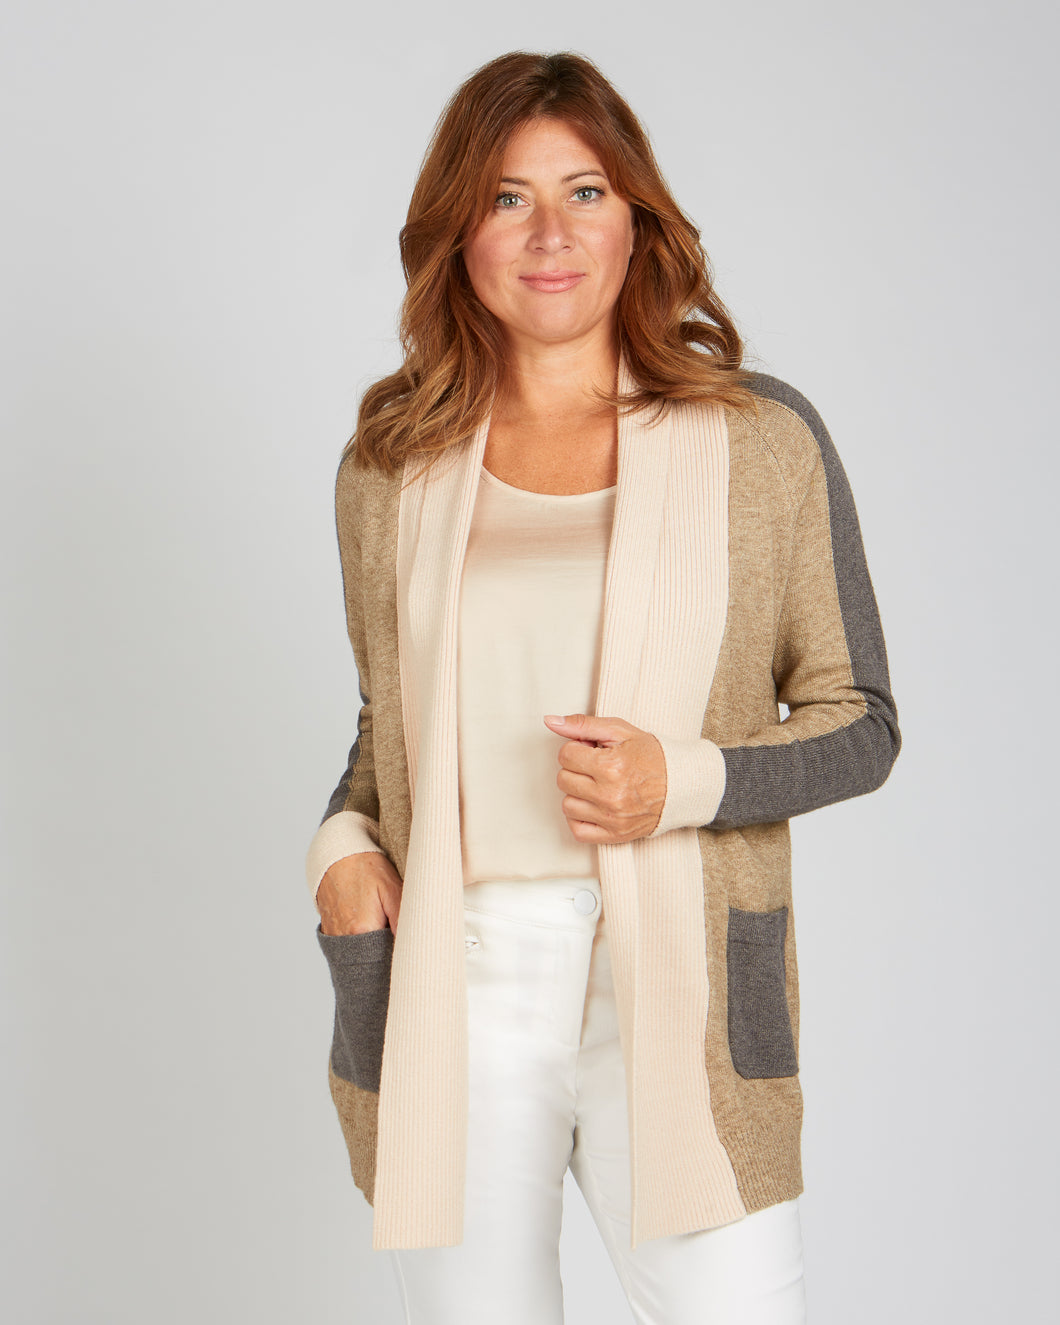 Renuar Knit Sweater Cardigan - Style R6722